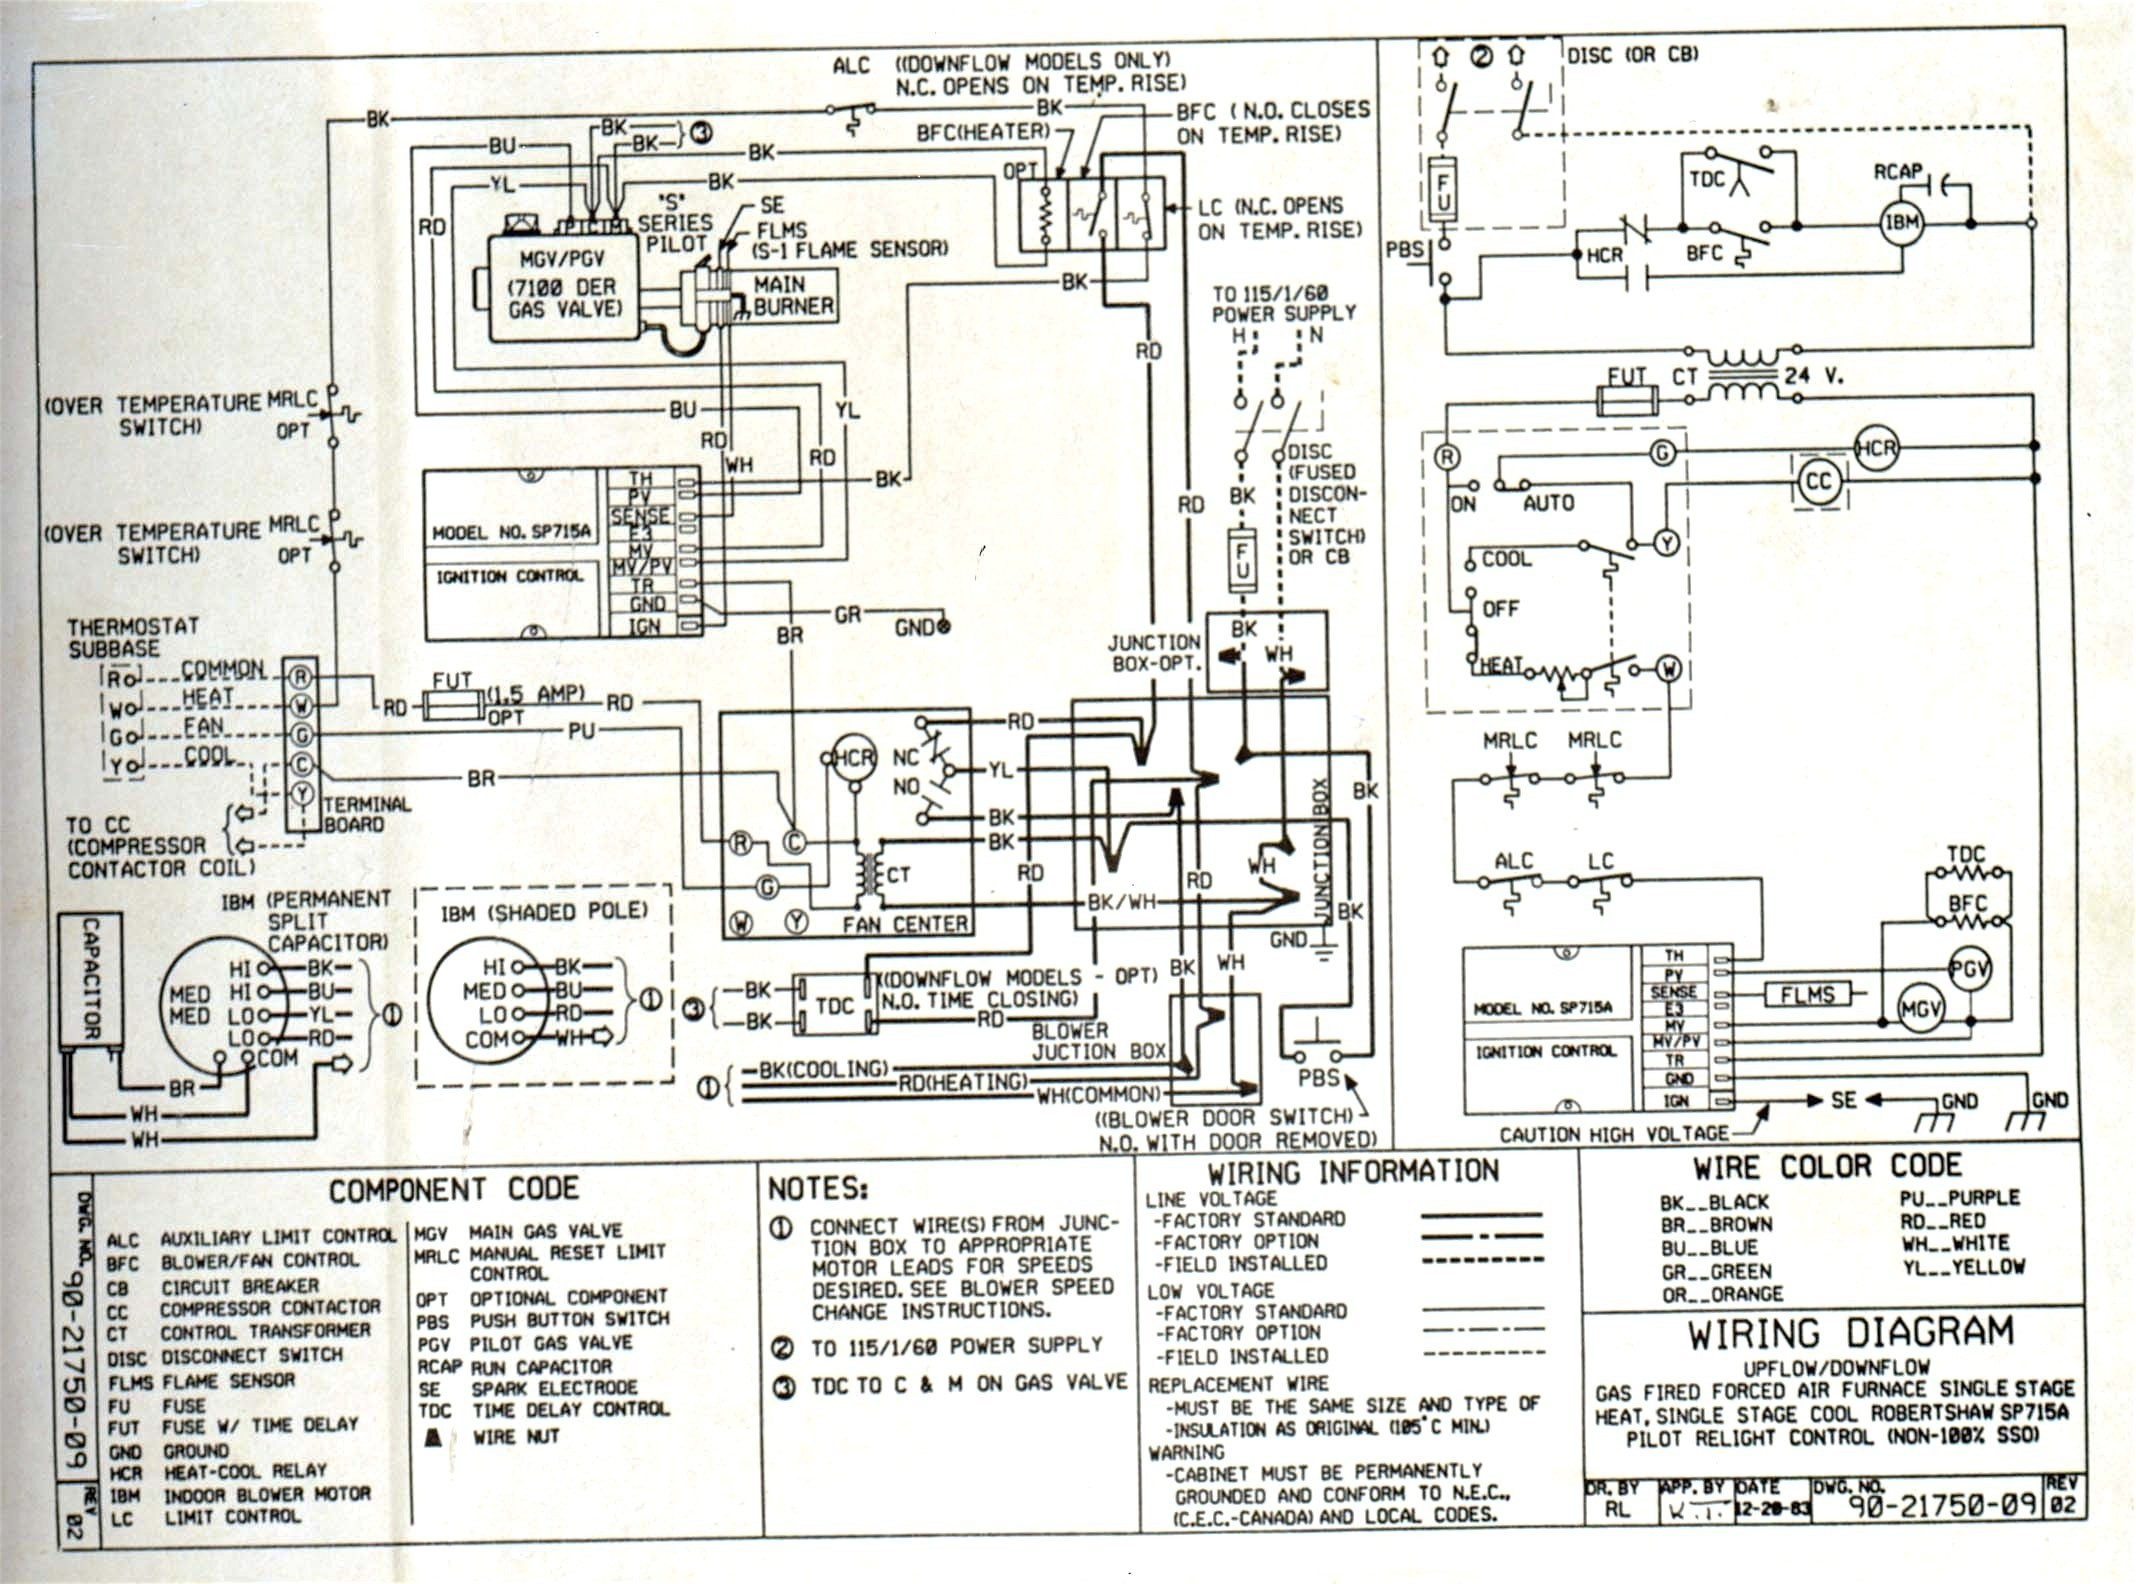 daikin mini split wiring diagram Collection-Wiring Diagram Ac Split Daikin Inverter Best Großzügig Daikin Mini Split Schaltplan Bilder Verdrahtungsideen 9-p